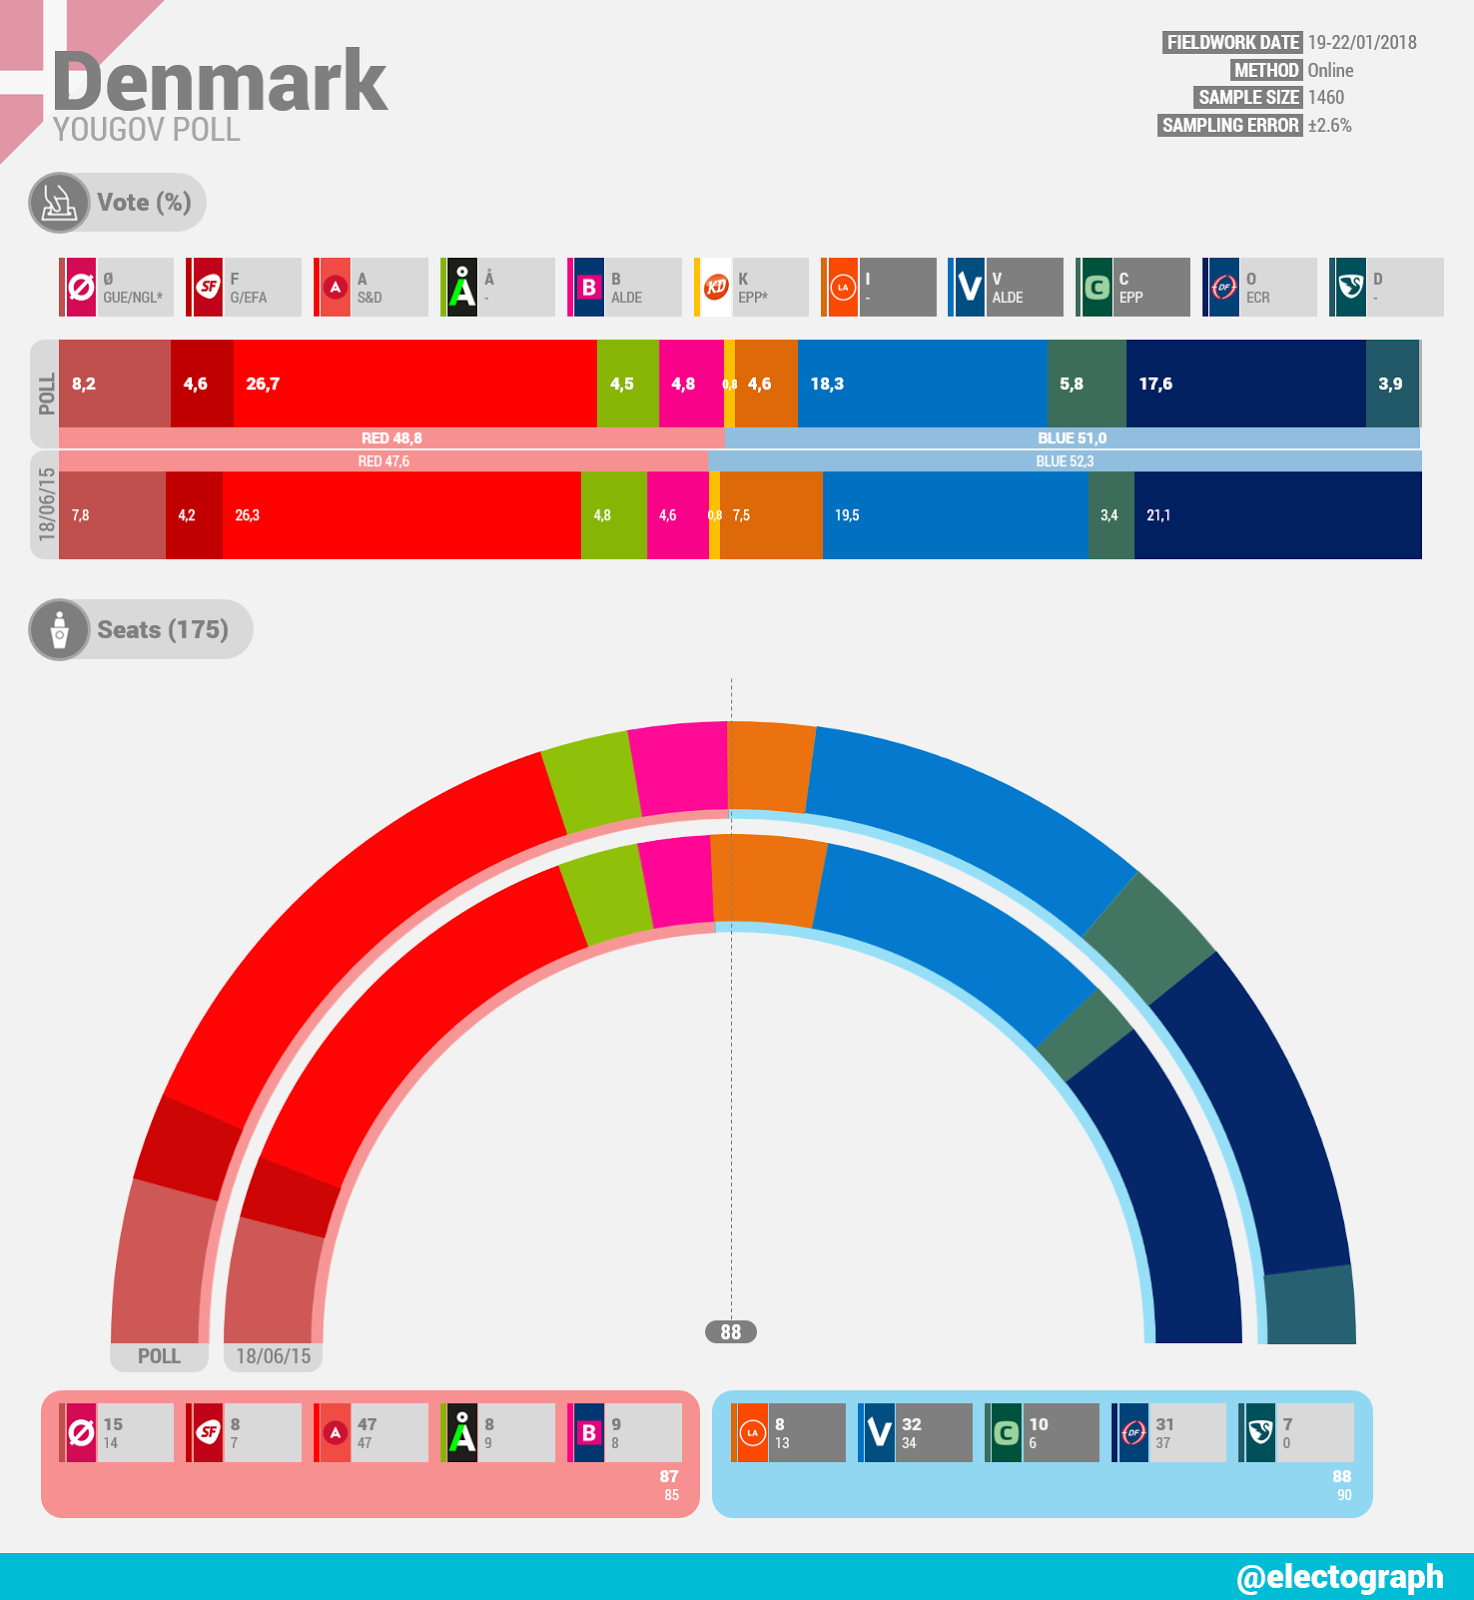 DENMARK YouGov poll chart, January 2018